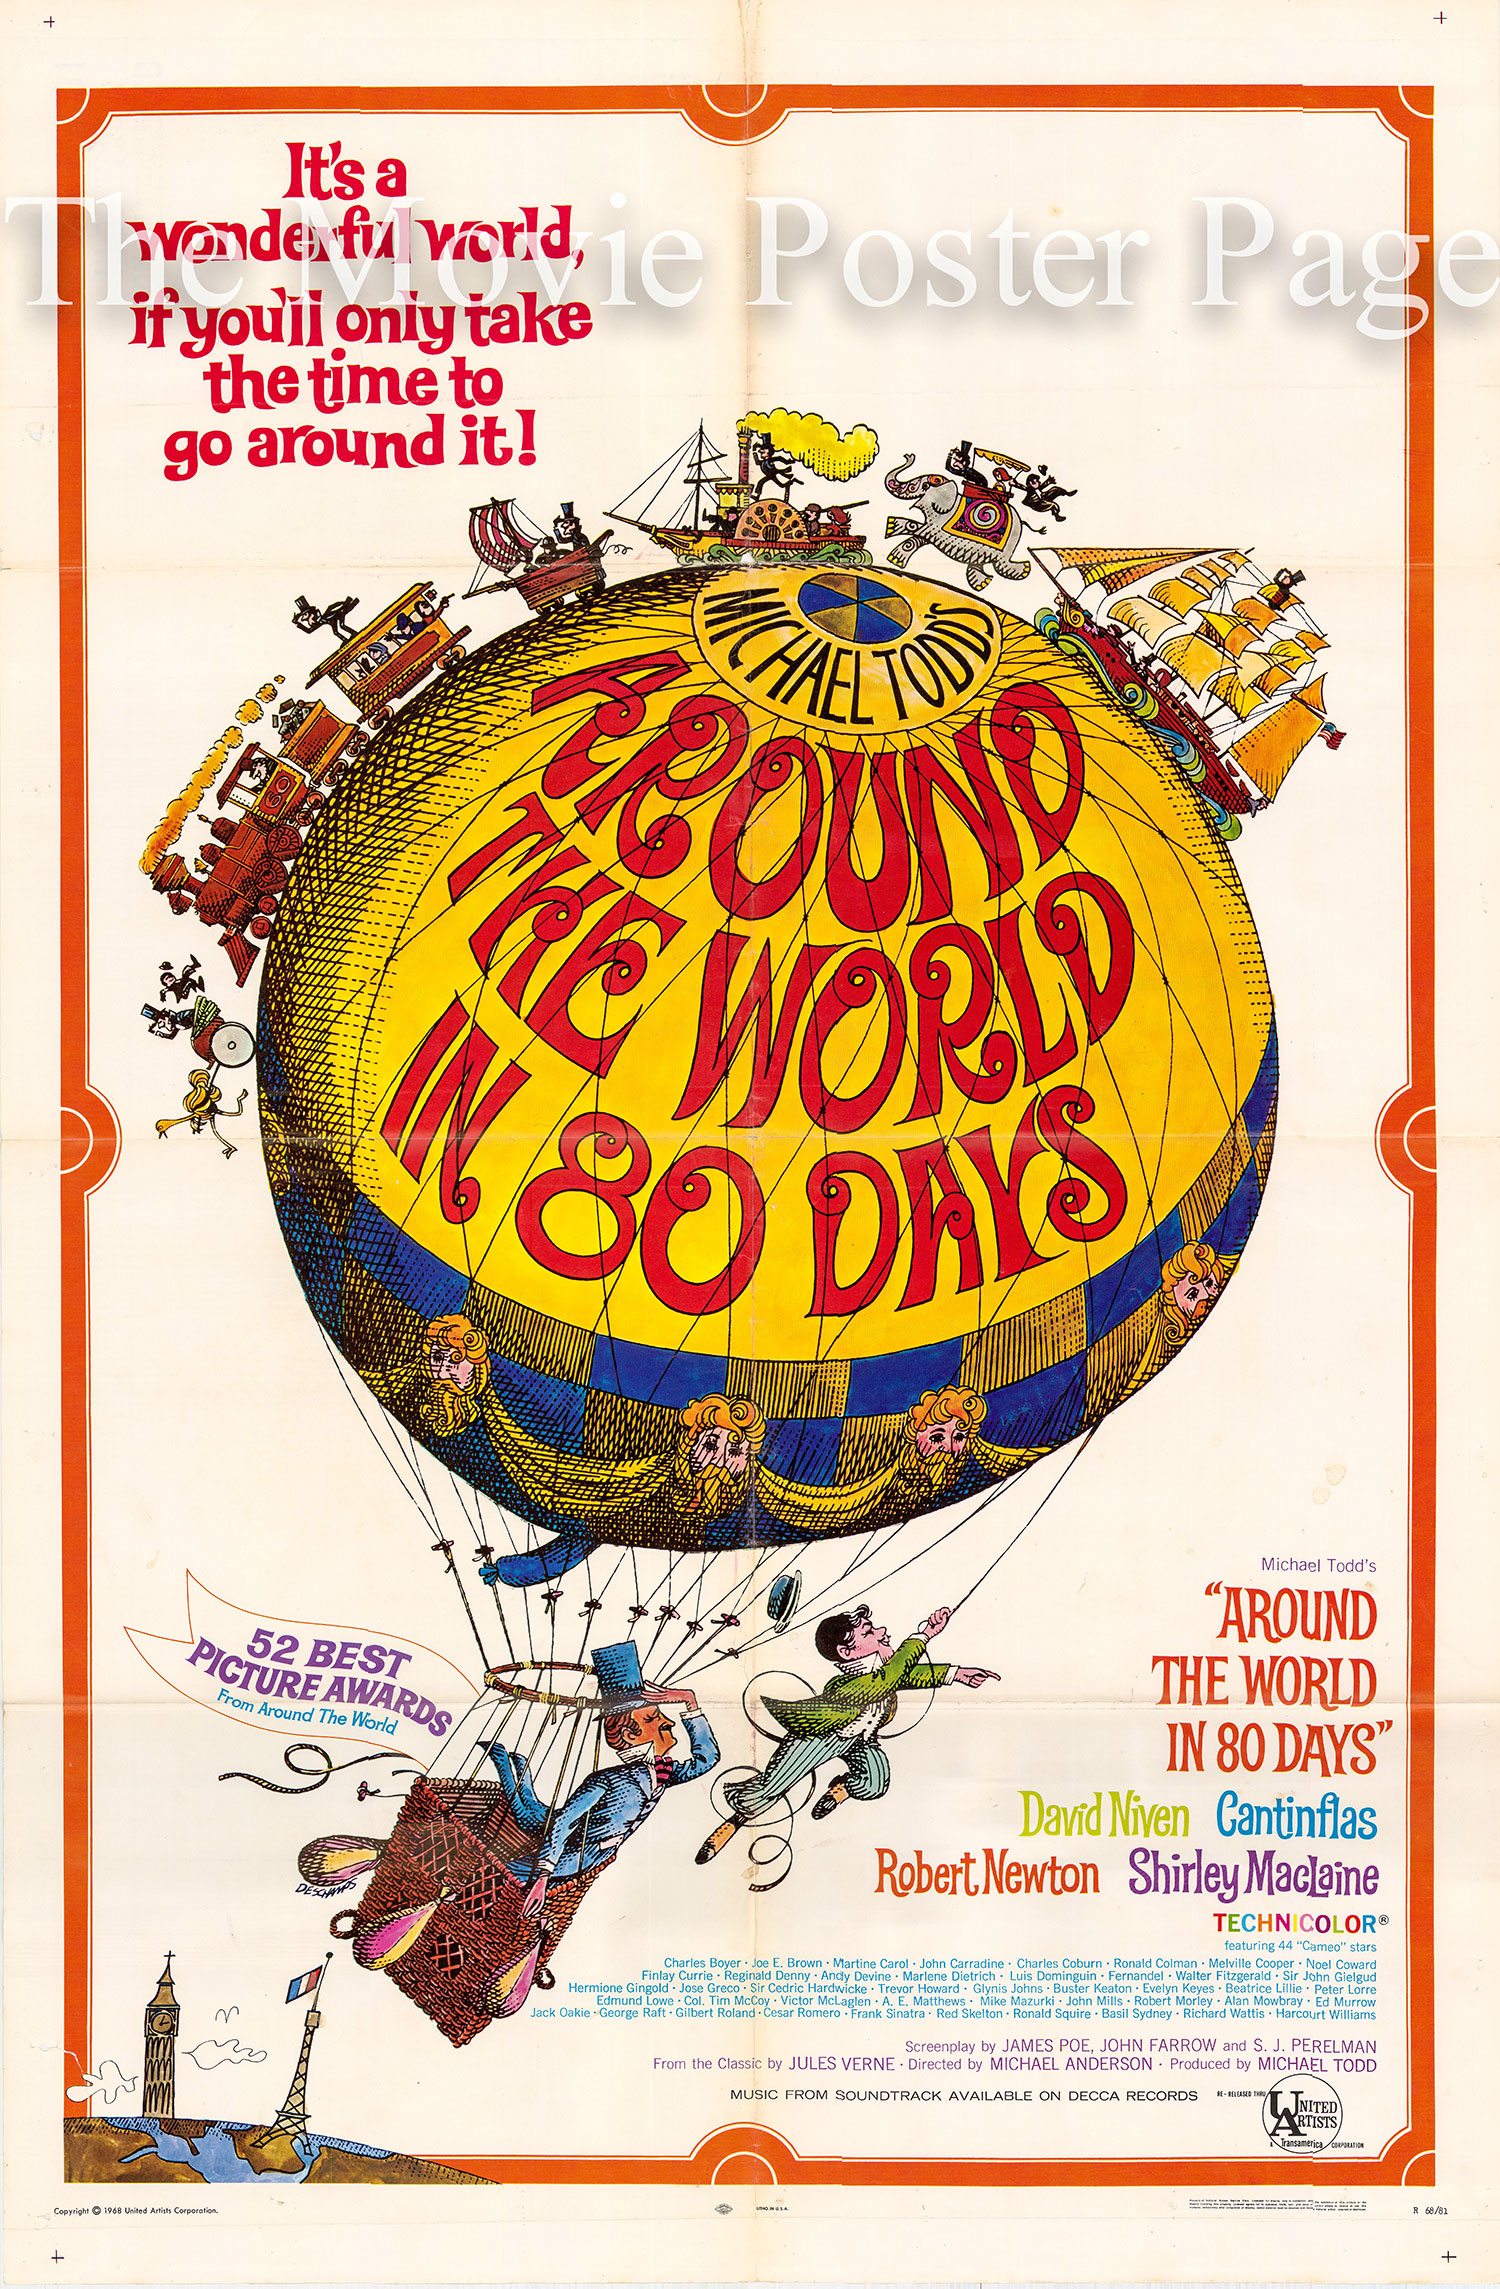 Pictured is a US one-sheet poster for a 1968 rerelease of the 1956 Michael Anderson and John Farrow film Around the World in 80 Days starring David Niven as Phileas Fogg